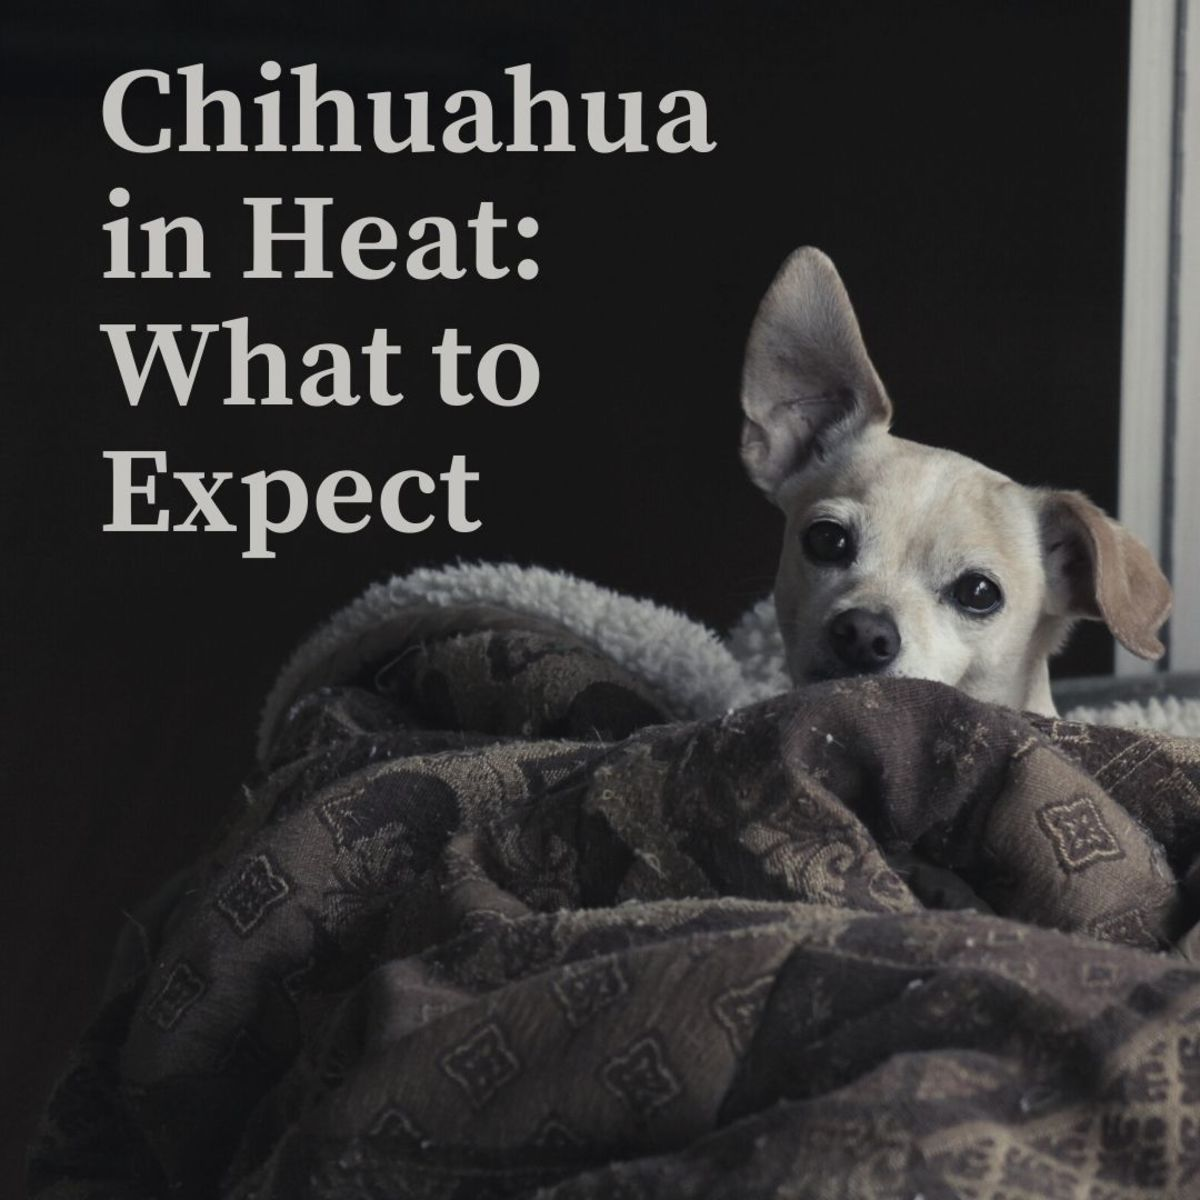 All about the chihuahua heat cycle and what to expect